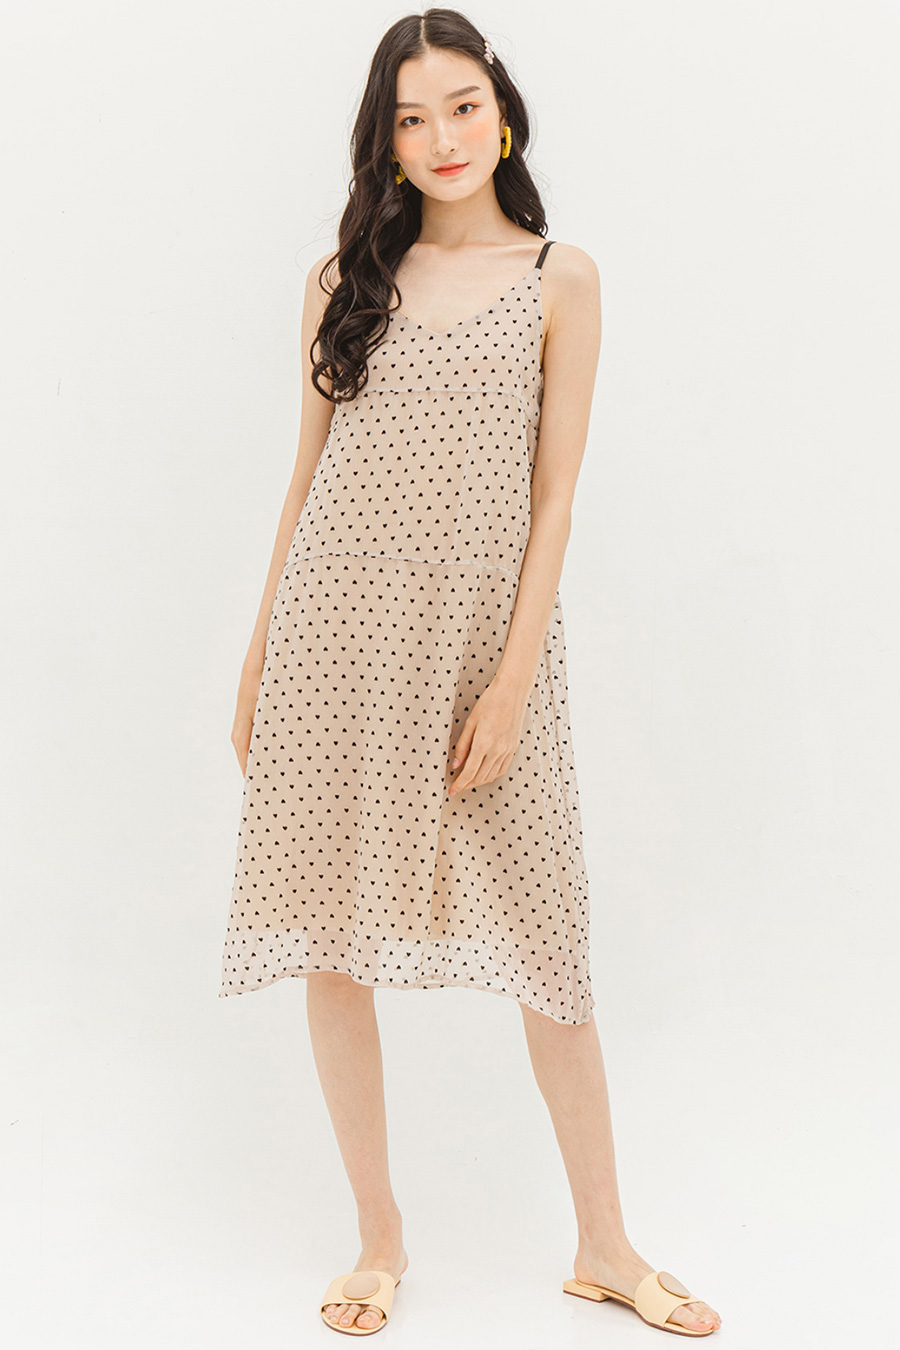 LILY DRESS - HEARTIE